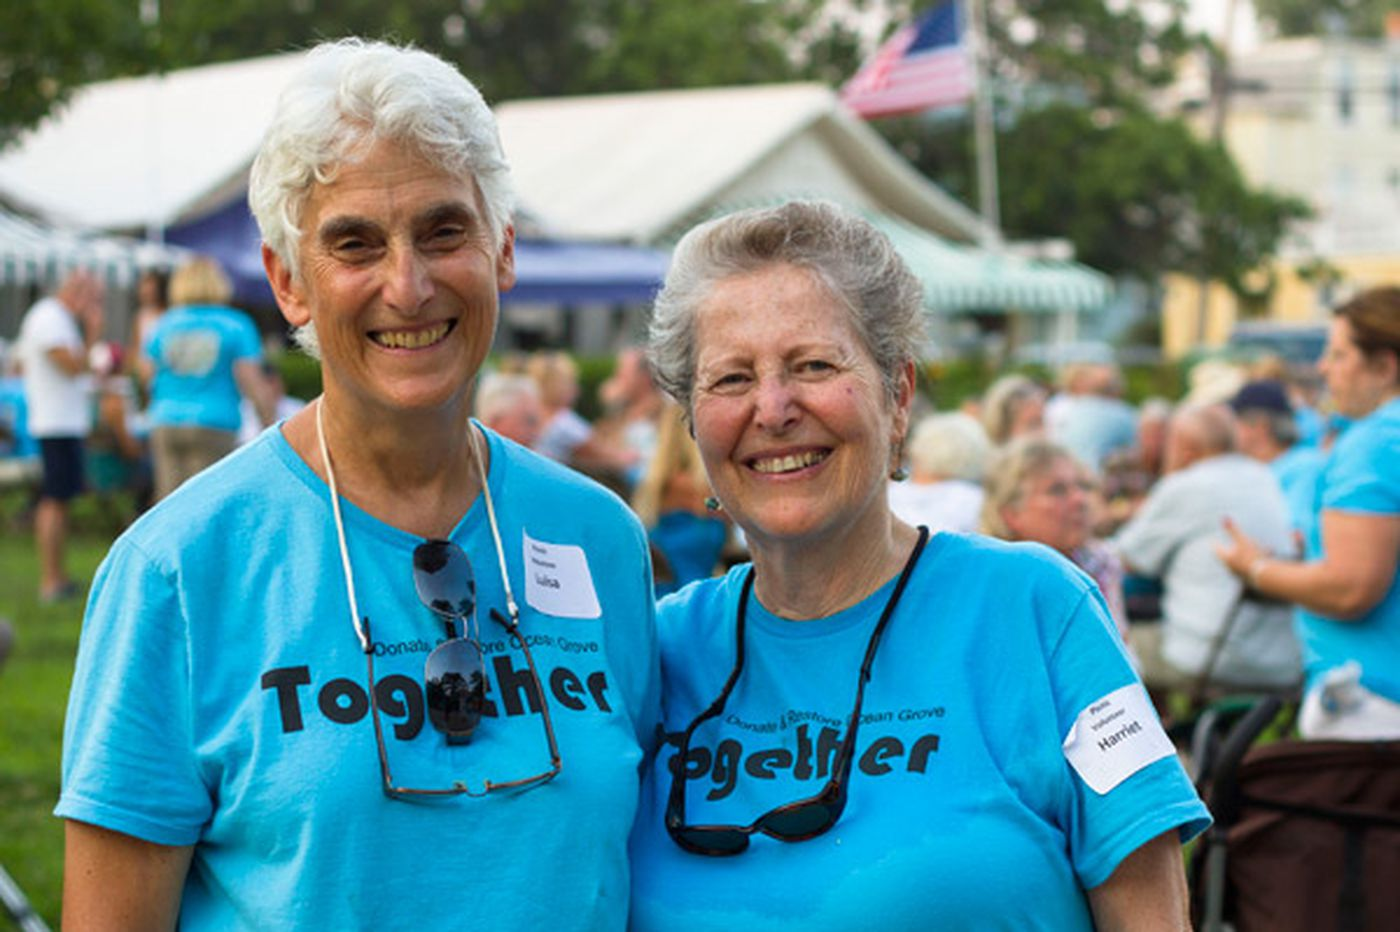 Methodists and gay residents reconcile at Ocean Grove fund-raiser